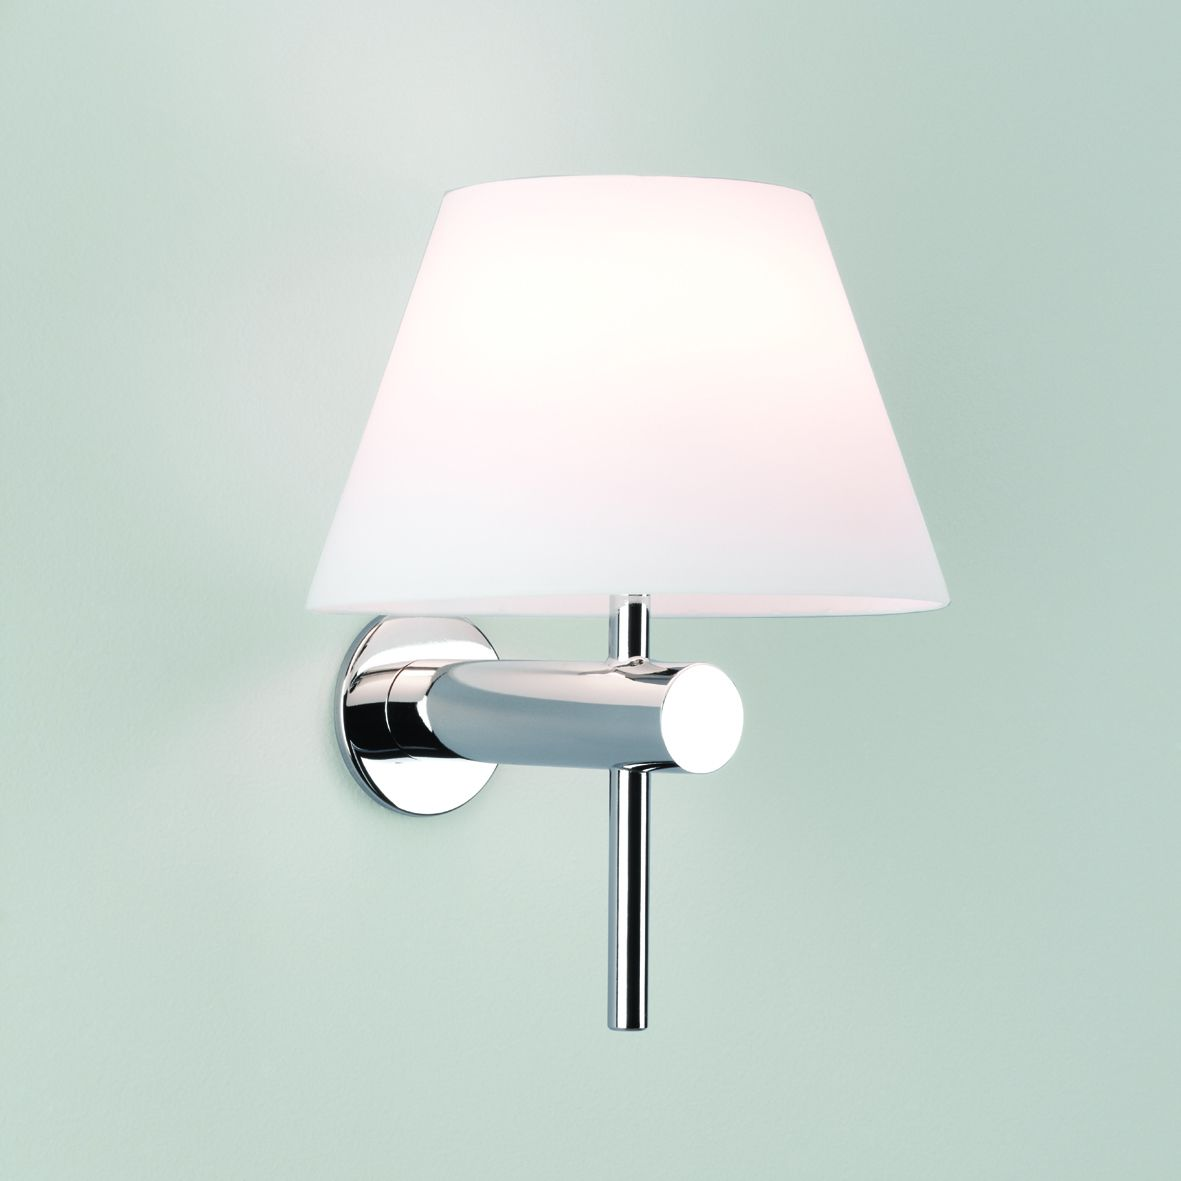 Wall Lights Lampshades : Wall lamps - lighting fixtures that are mounted on walls Warisan Lighting